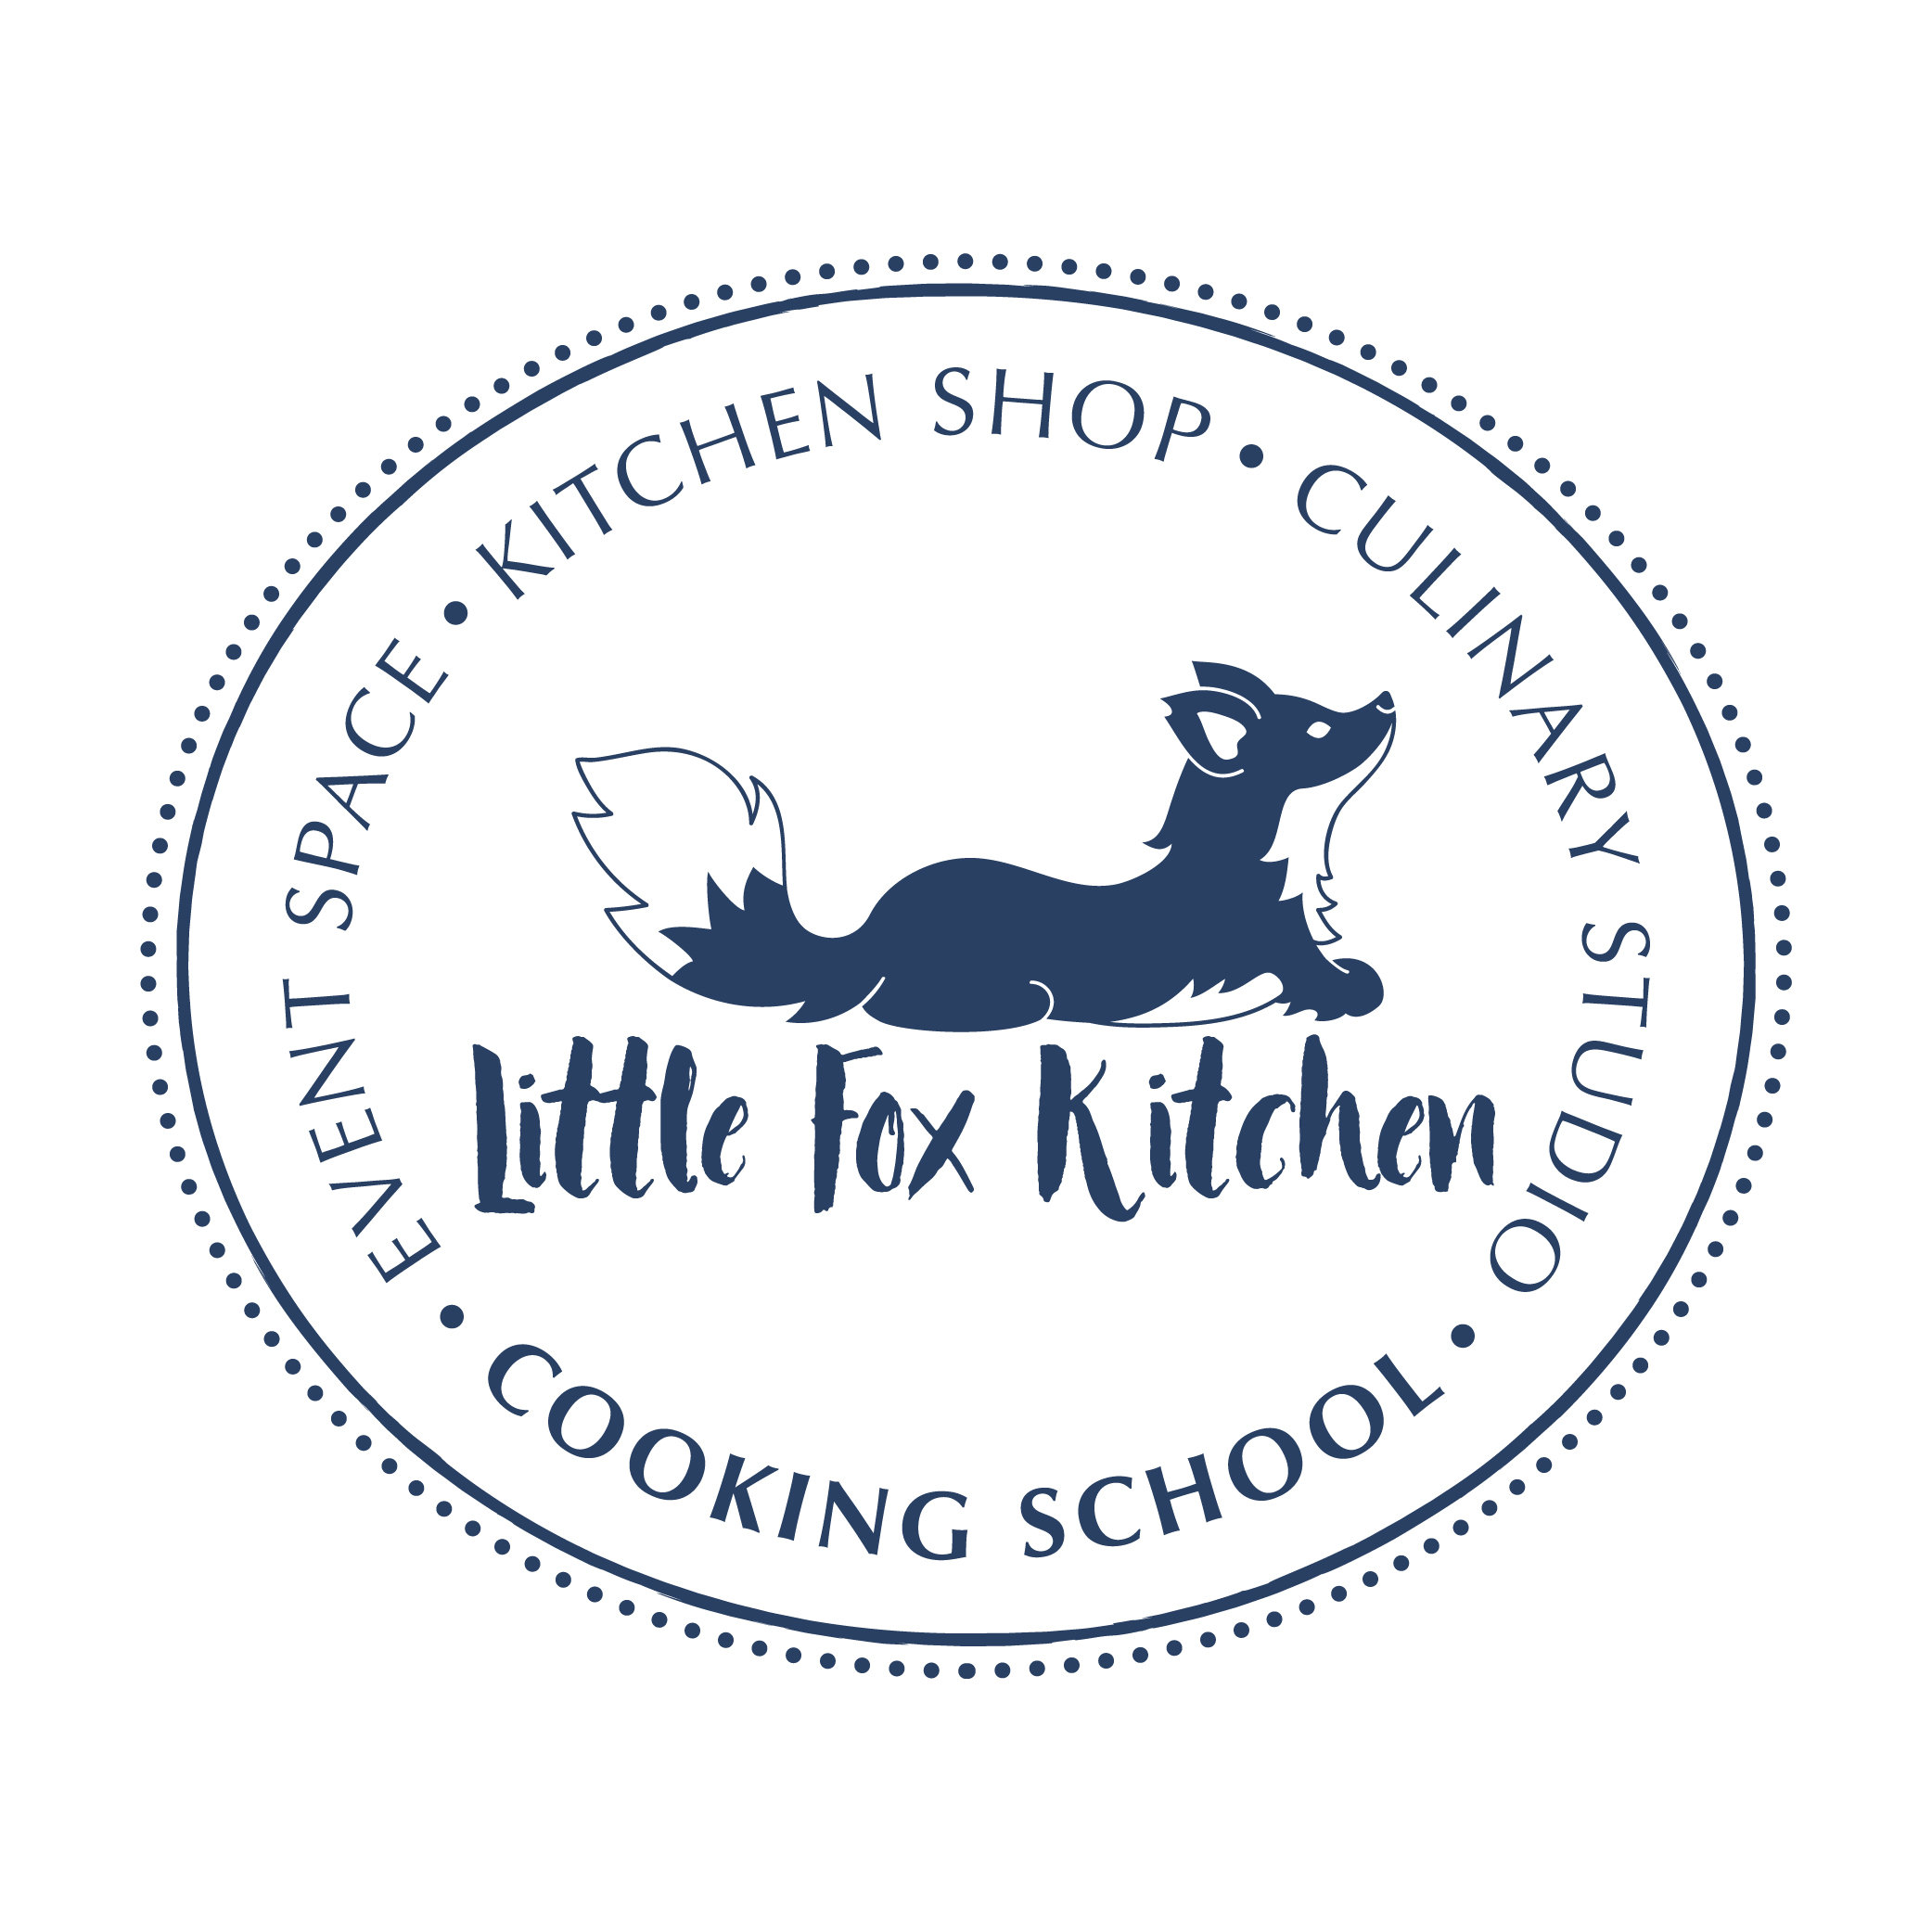 Little Fox Kitchen_seal_design_Artboard 27 copy 17.jpg